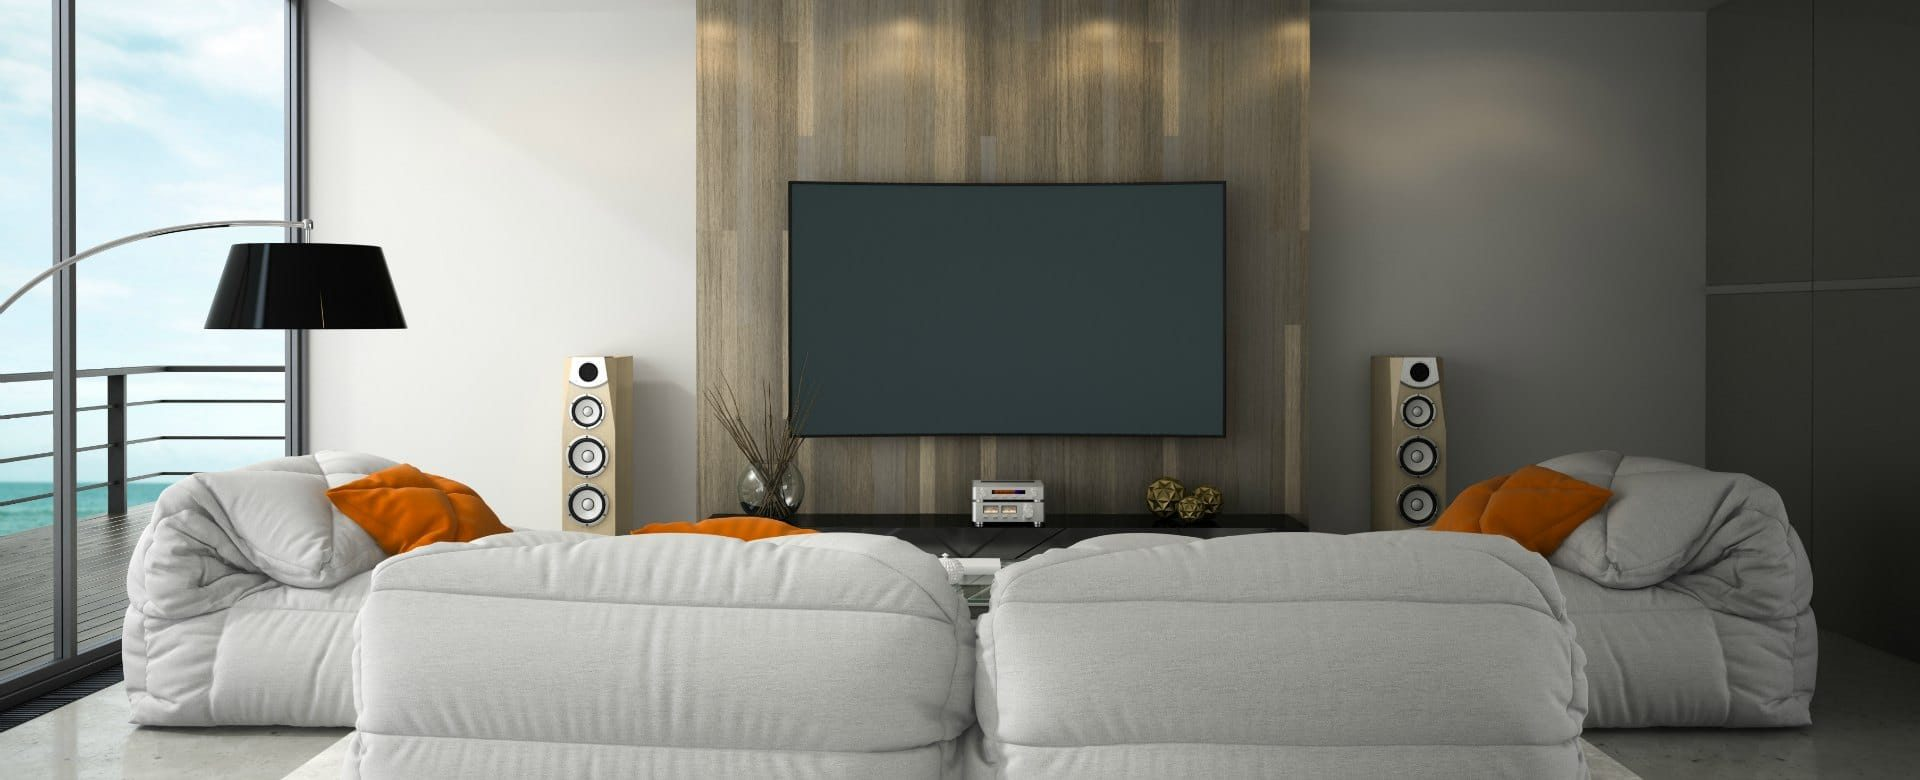 Soundproofing Tips - Enjoy Great Acoustics!